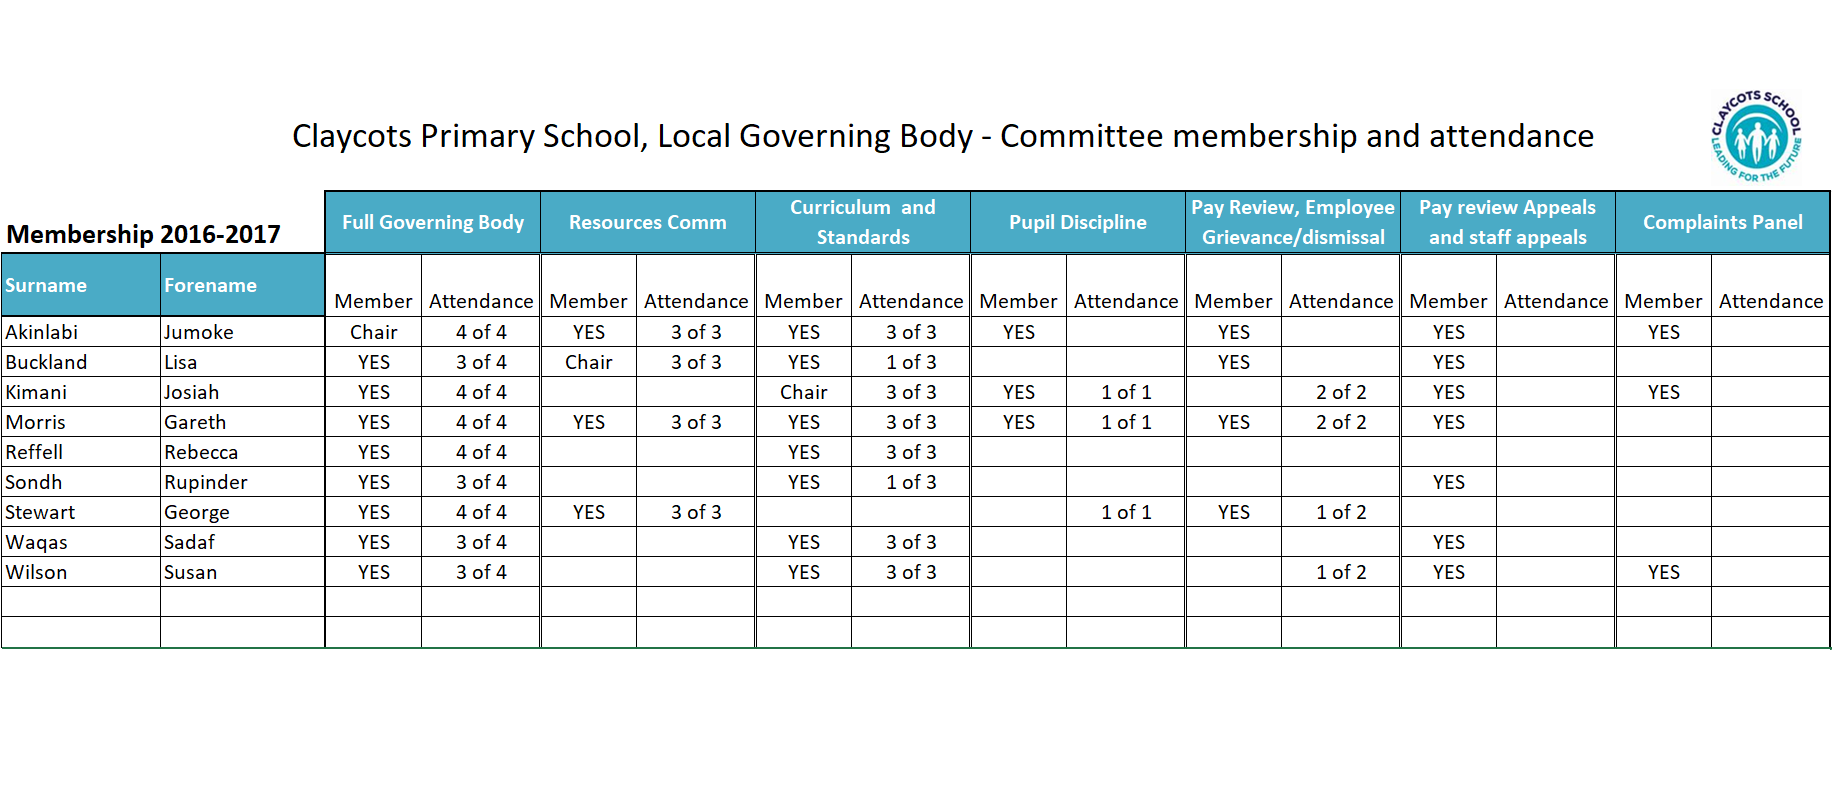 Claycots Primary School Local Governing Body Committee Membership and Attendance2